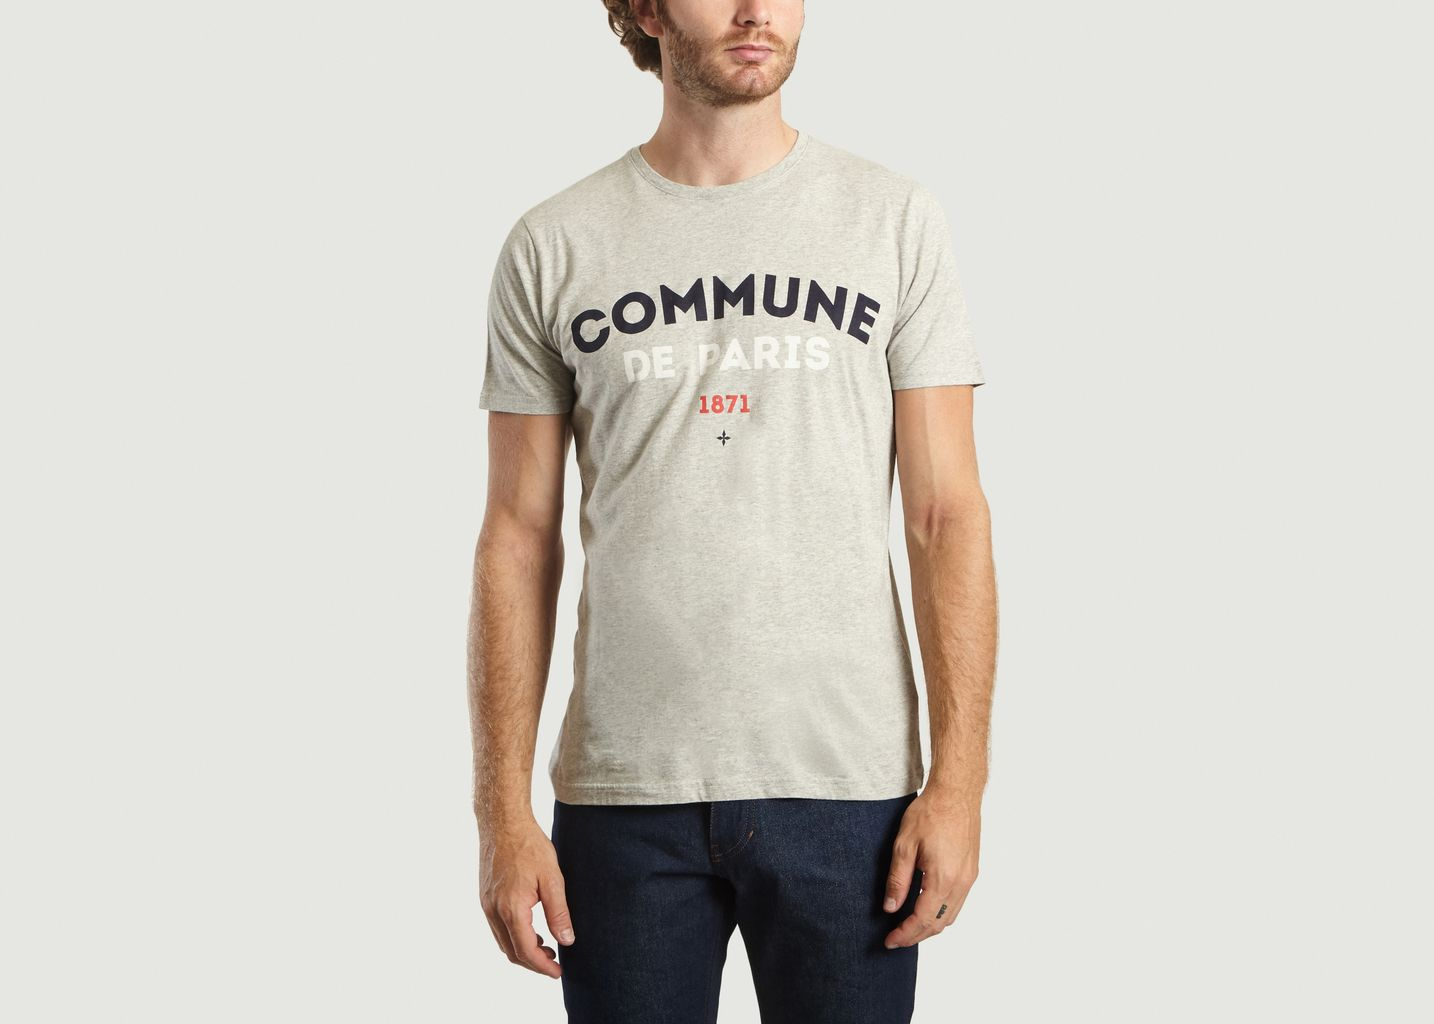 T-shirt Ici - Commune de Paris